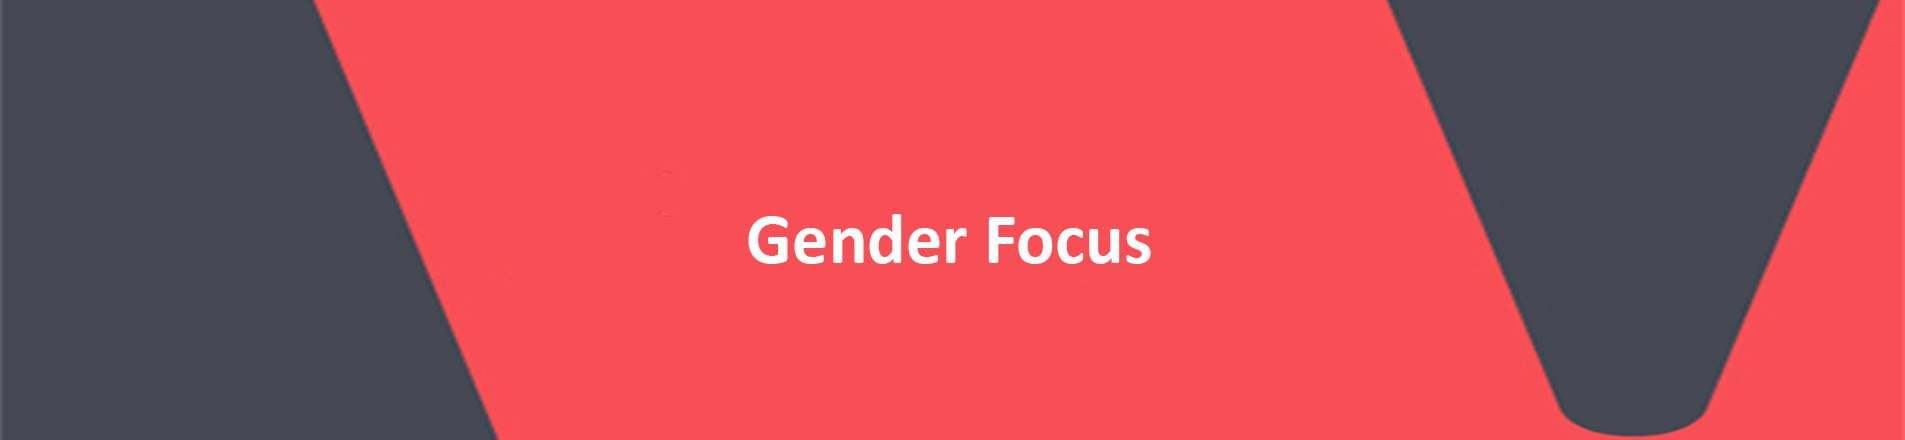 "Image of VERCIDA banner.  Red background with ""Gender Focus"" spelled in white letters."